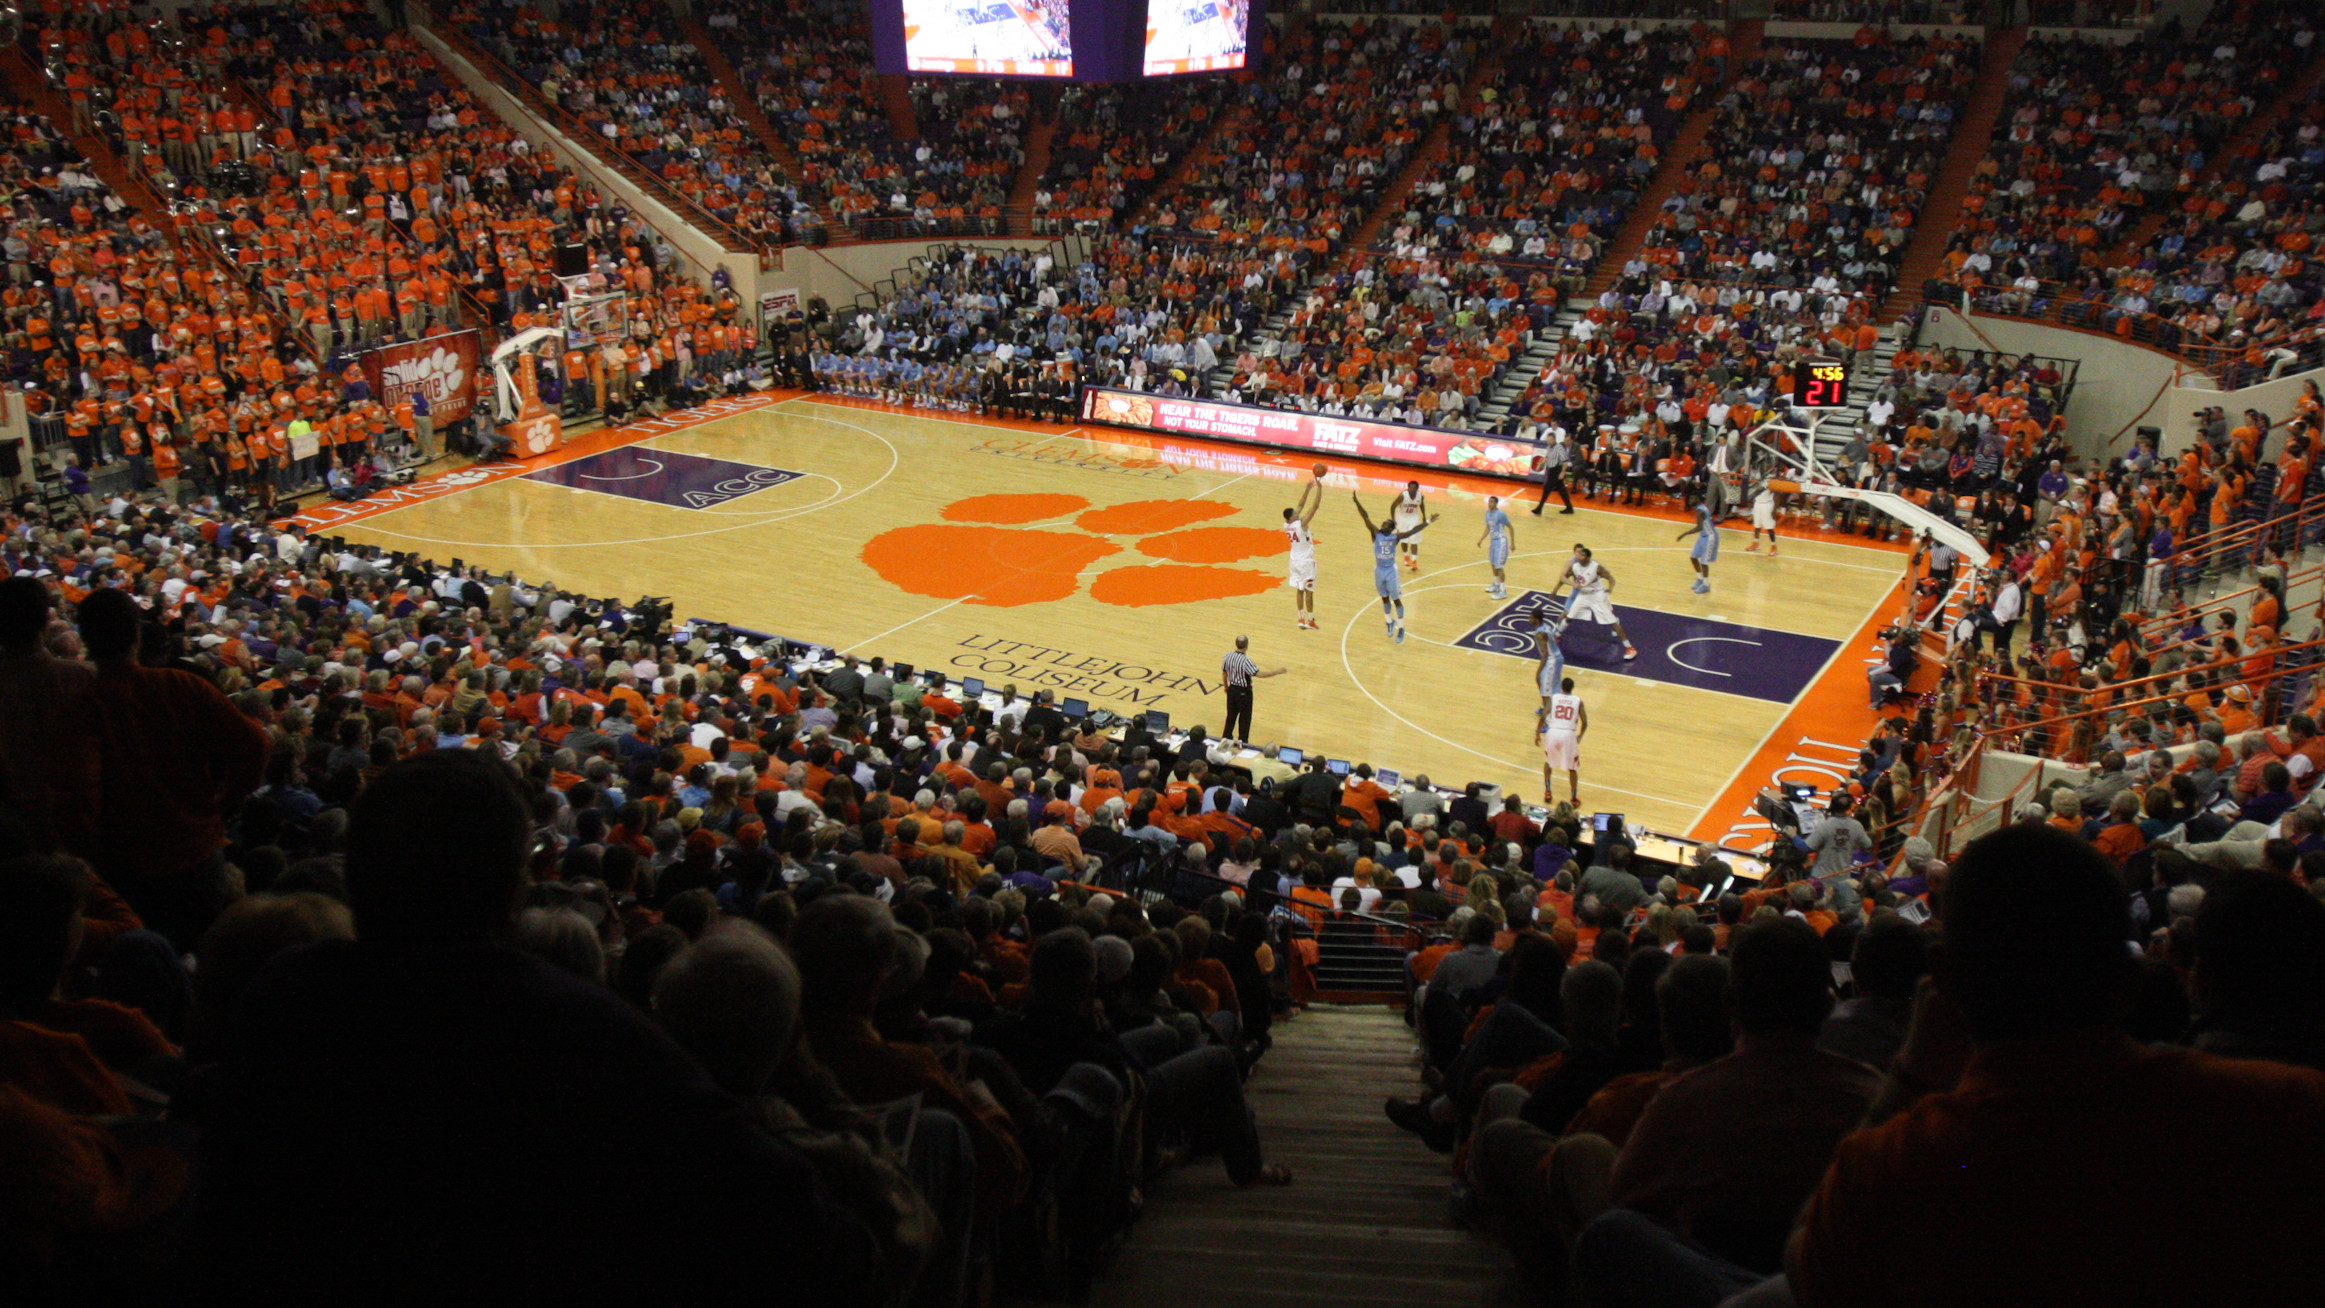 Tickets Sold Out for Clemson vs. Duke Men's Basketball Game